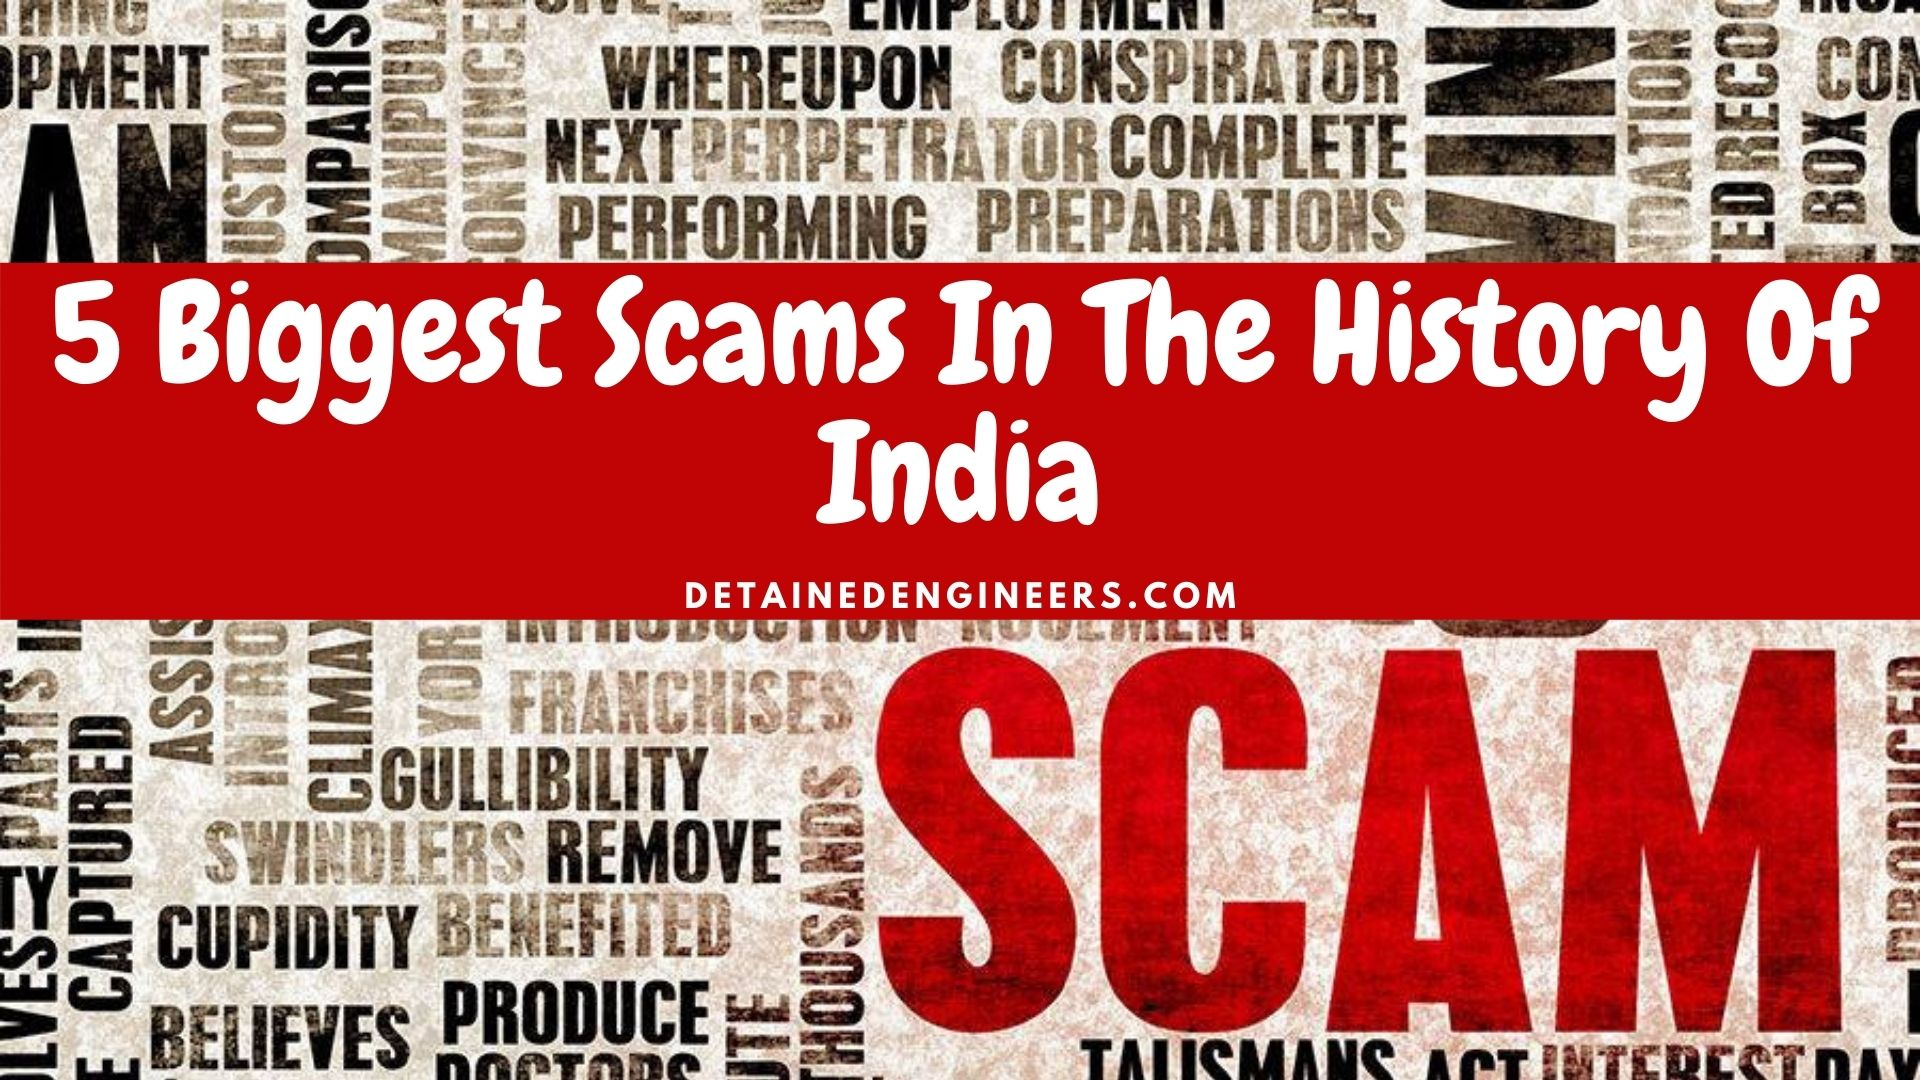 Biggest Scams In the History Of India